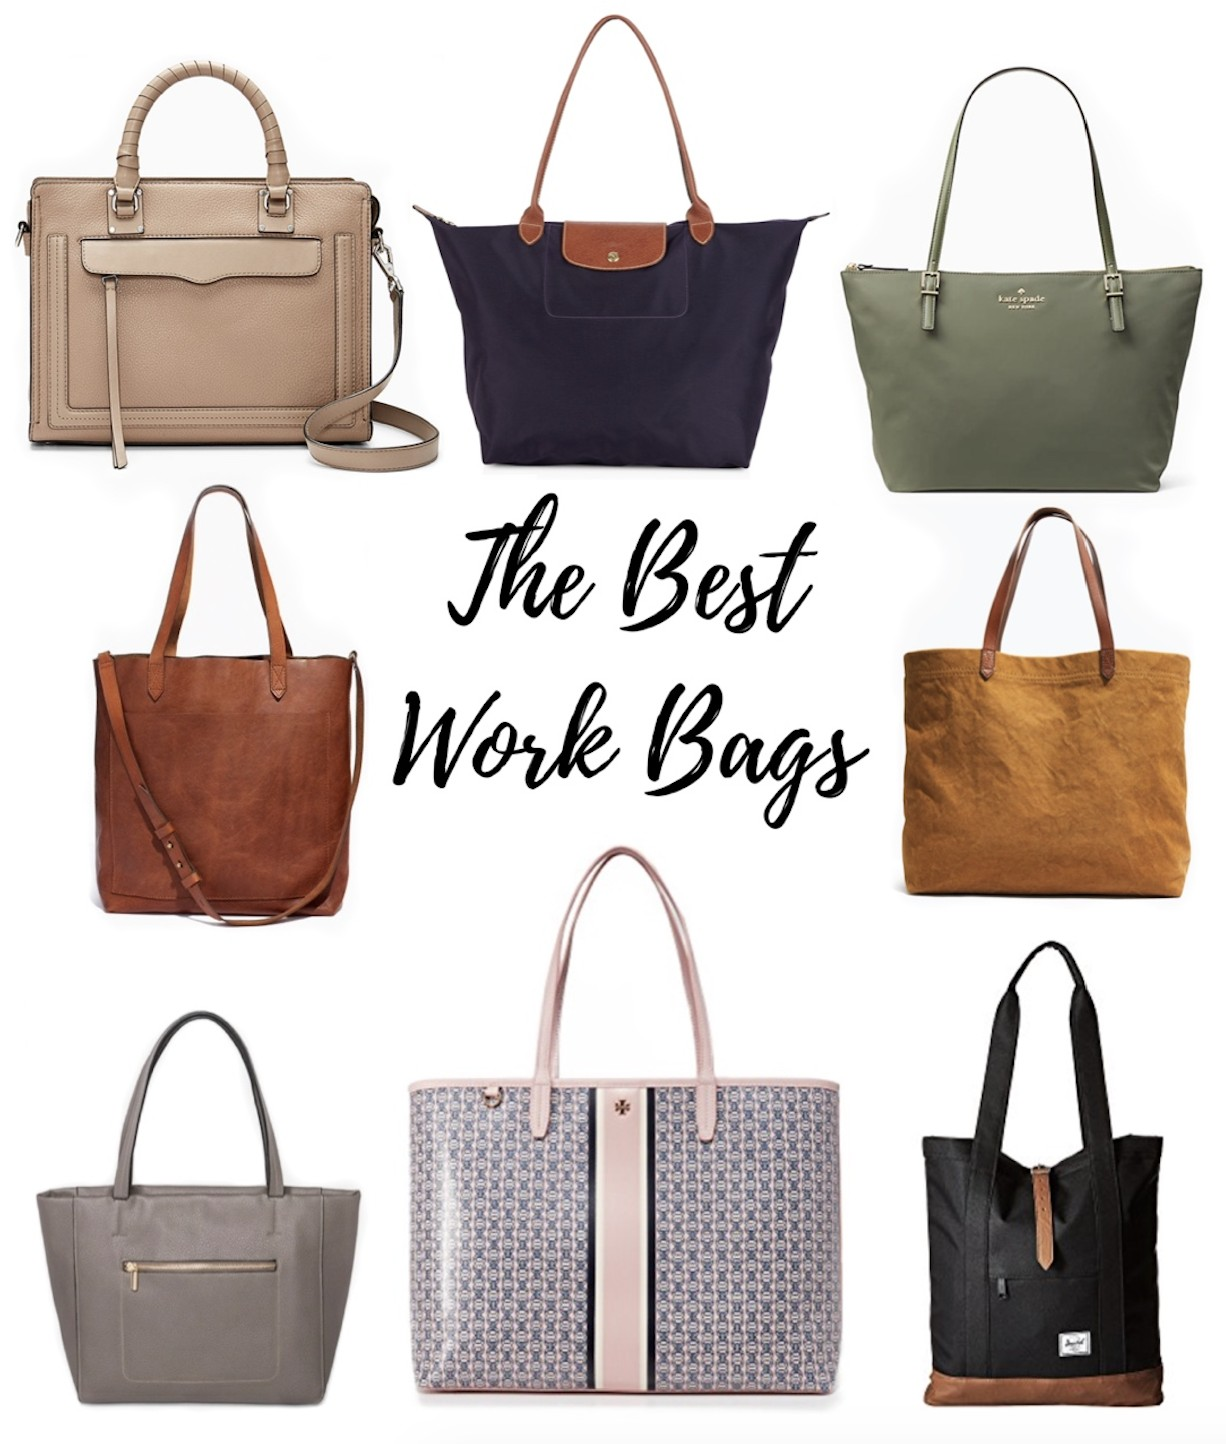 Best Bags for Work   New Grads – Bolt Blogs 3eba9f1c4a688